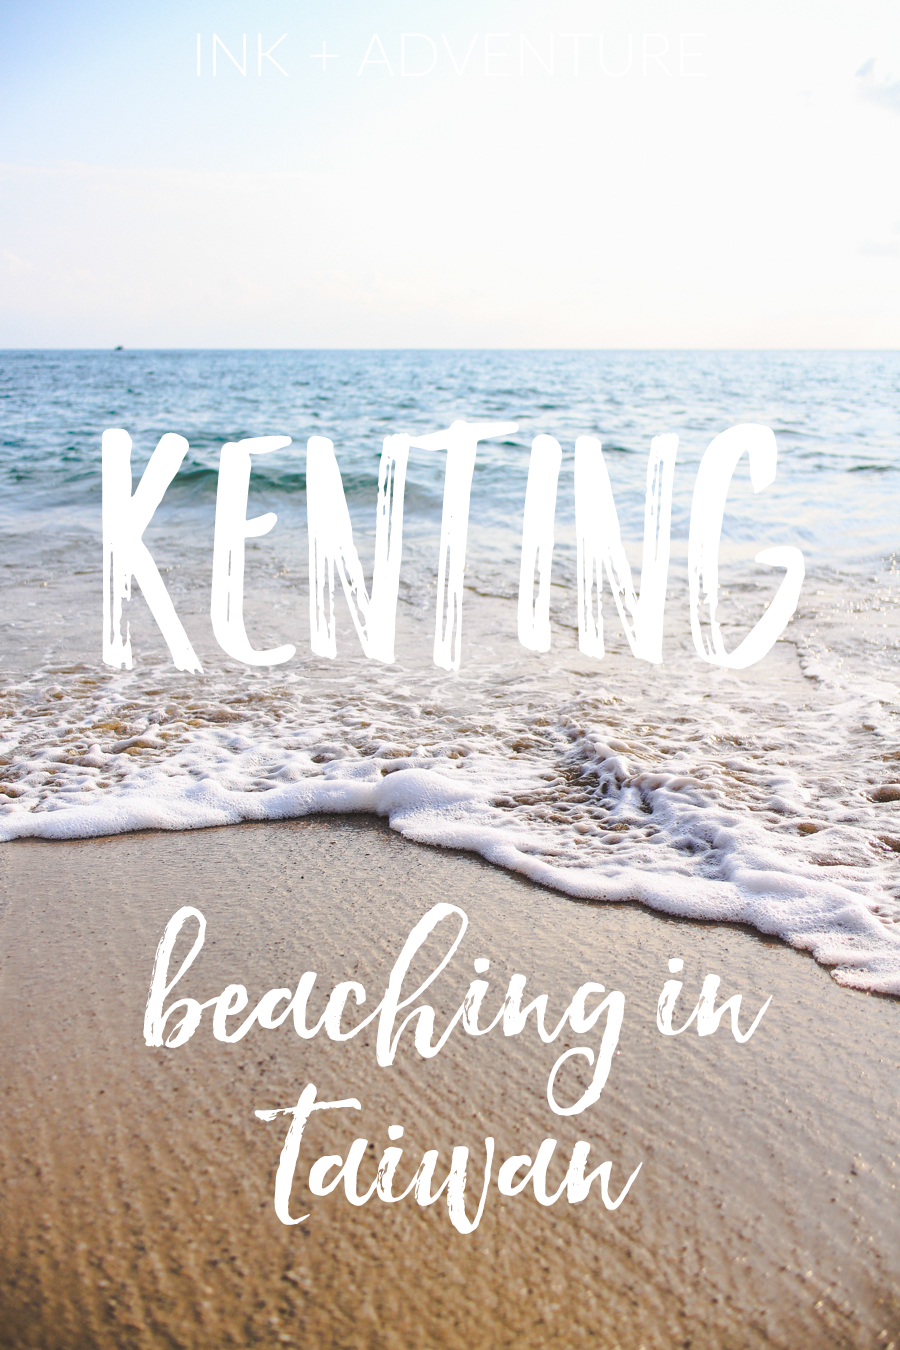 the beach town of Kenting is the perfect place for a sunny Taiwan vacation. while I was there we explored the South Bay and Kenting Beach areas, but the Little Bay or Xiaowan Beach was our favorite spot.